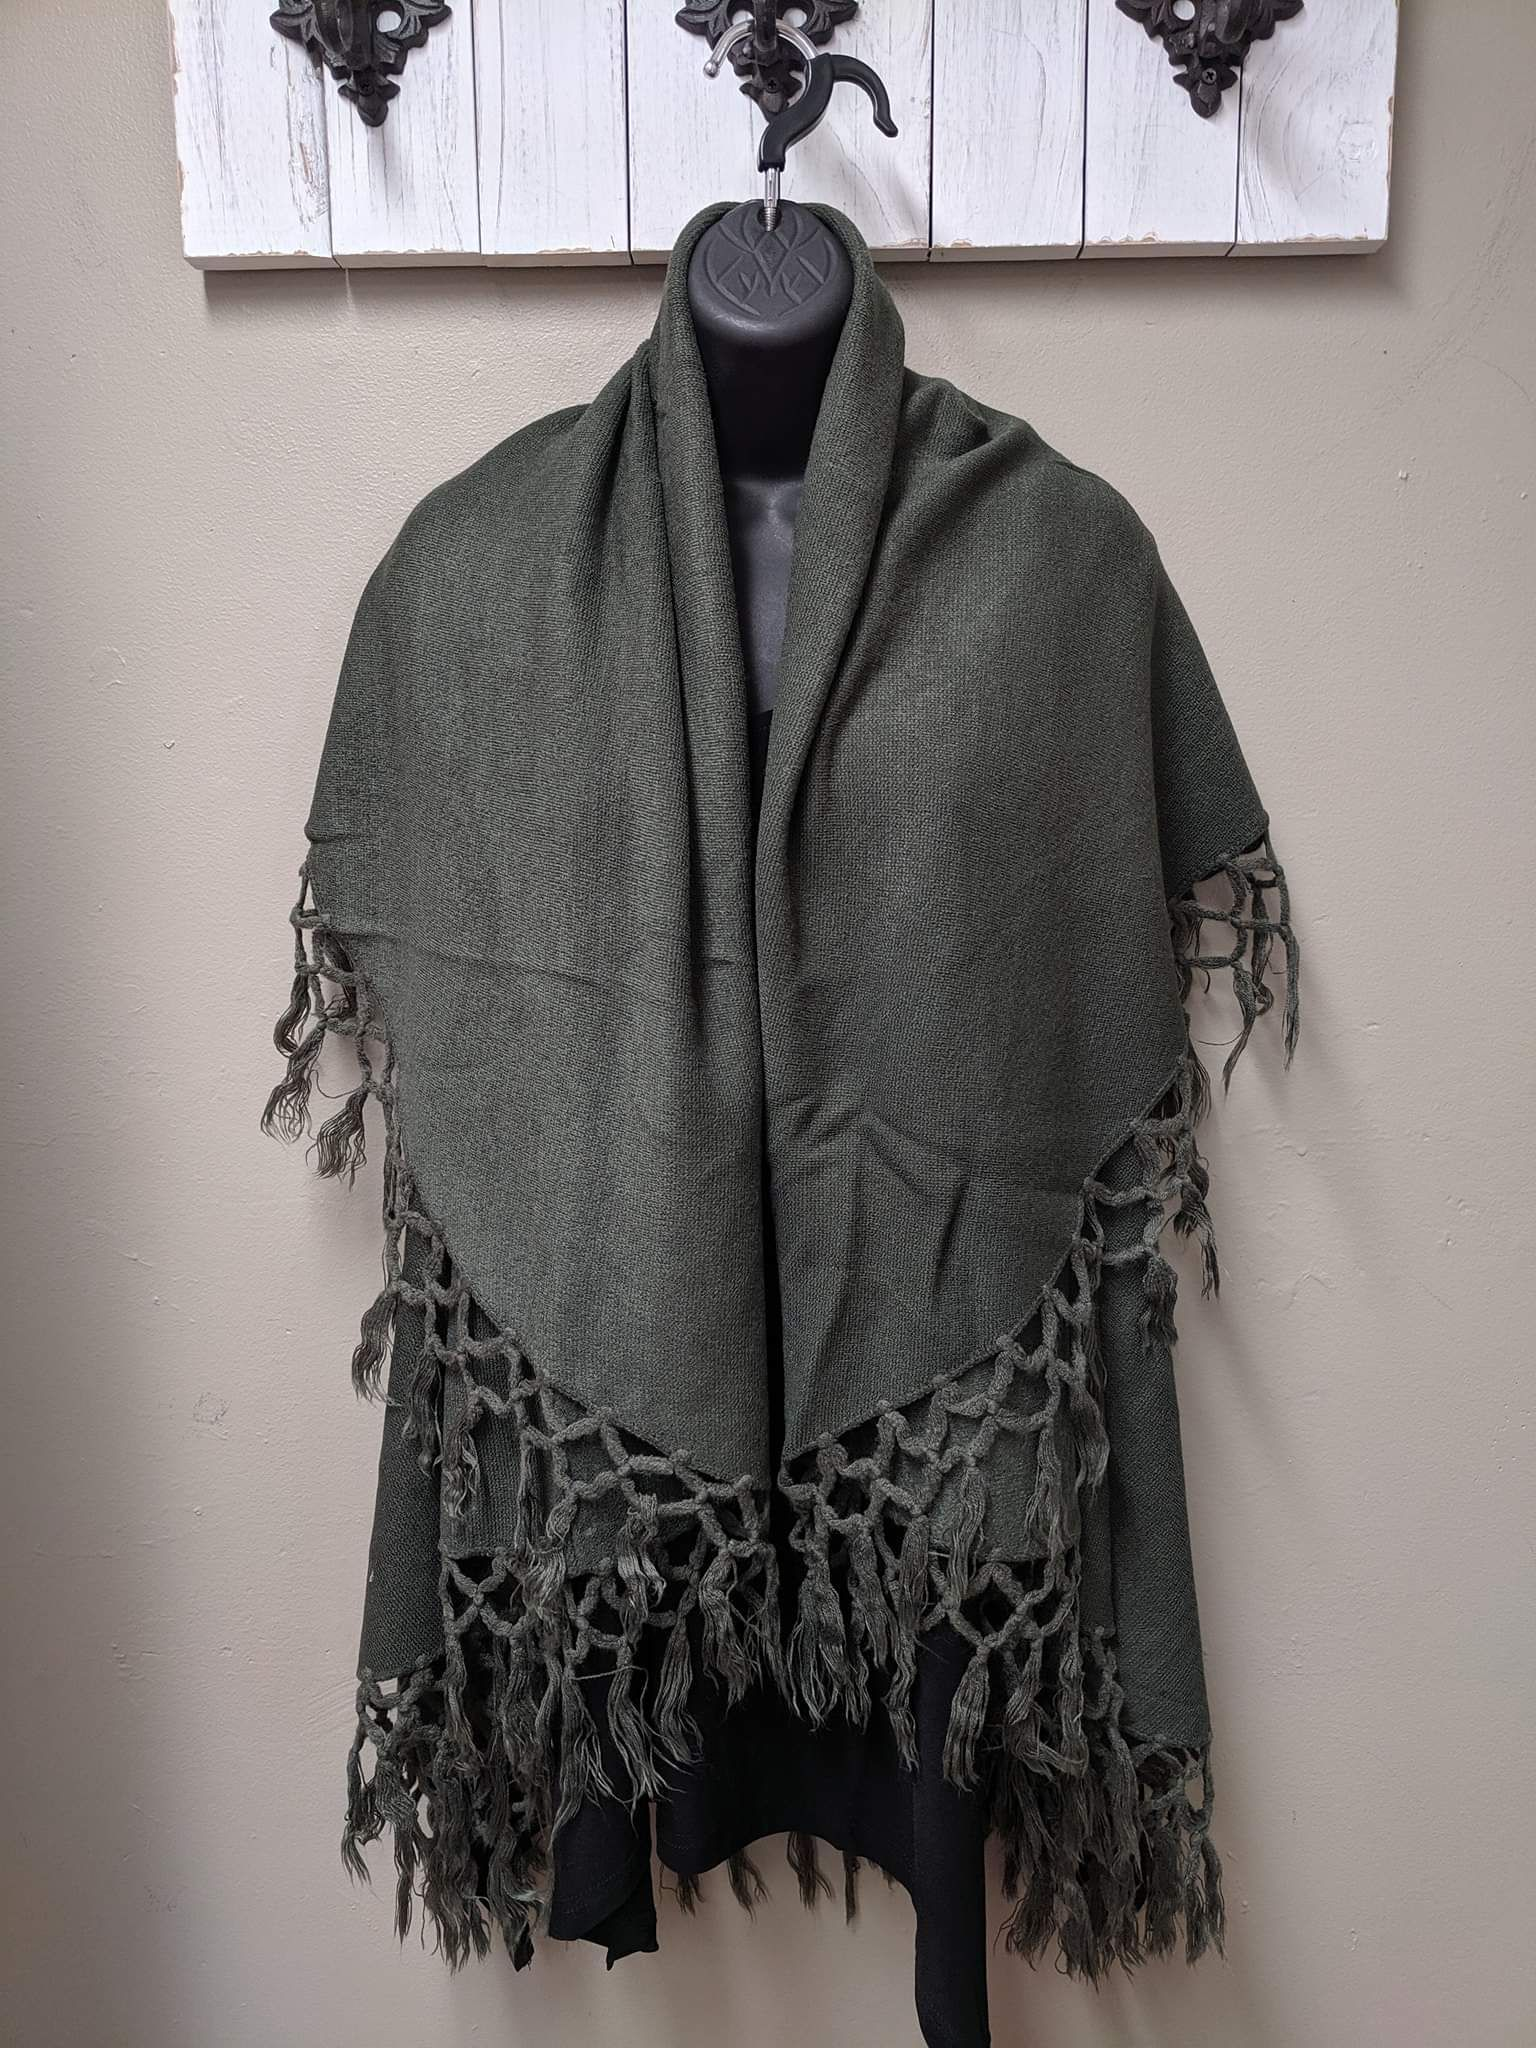 Print & Solid Colors - Double Layer Cape - One Size / Olive